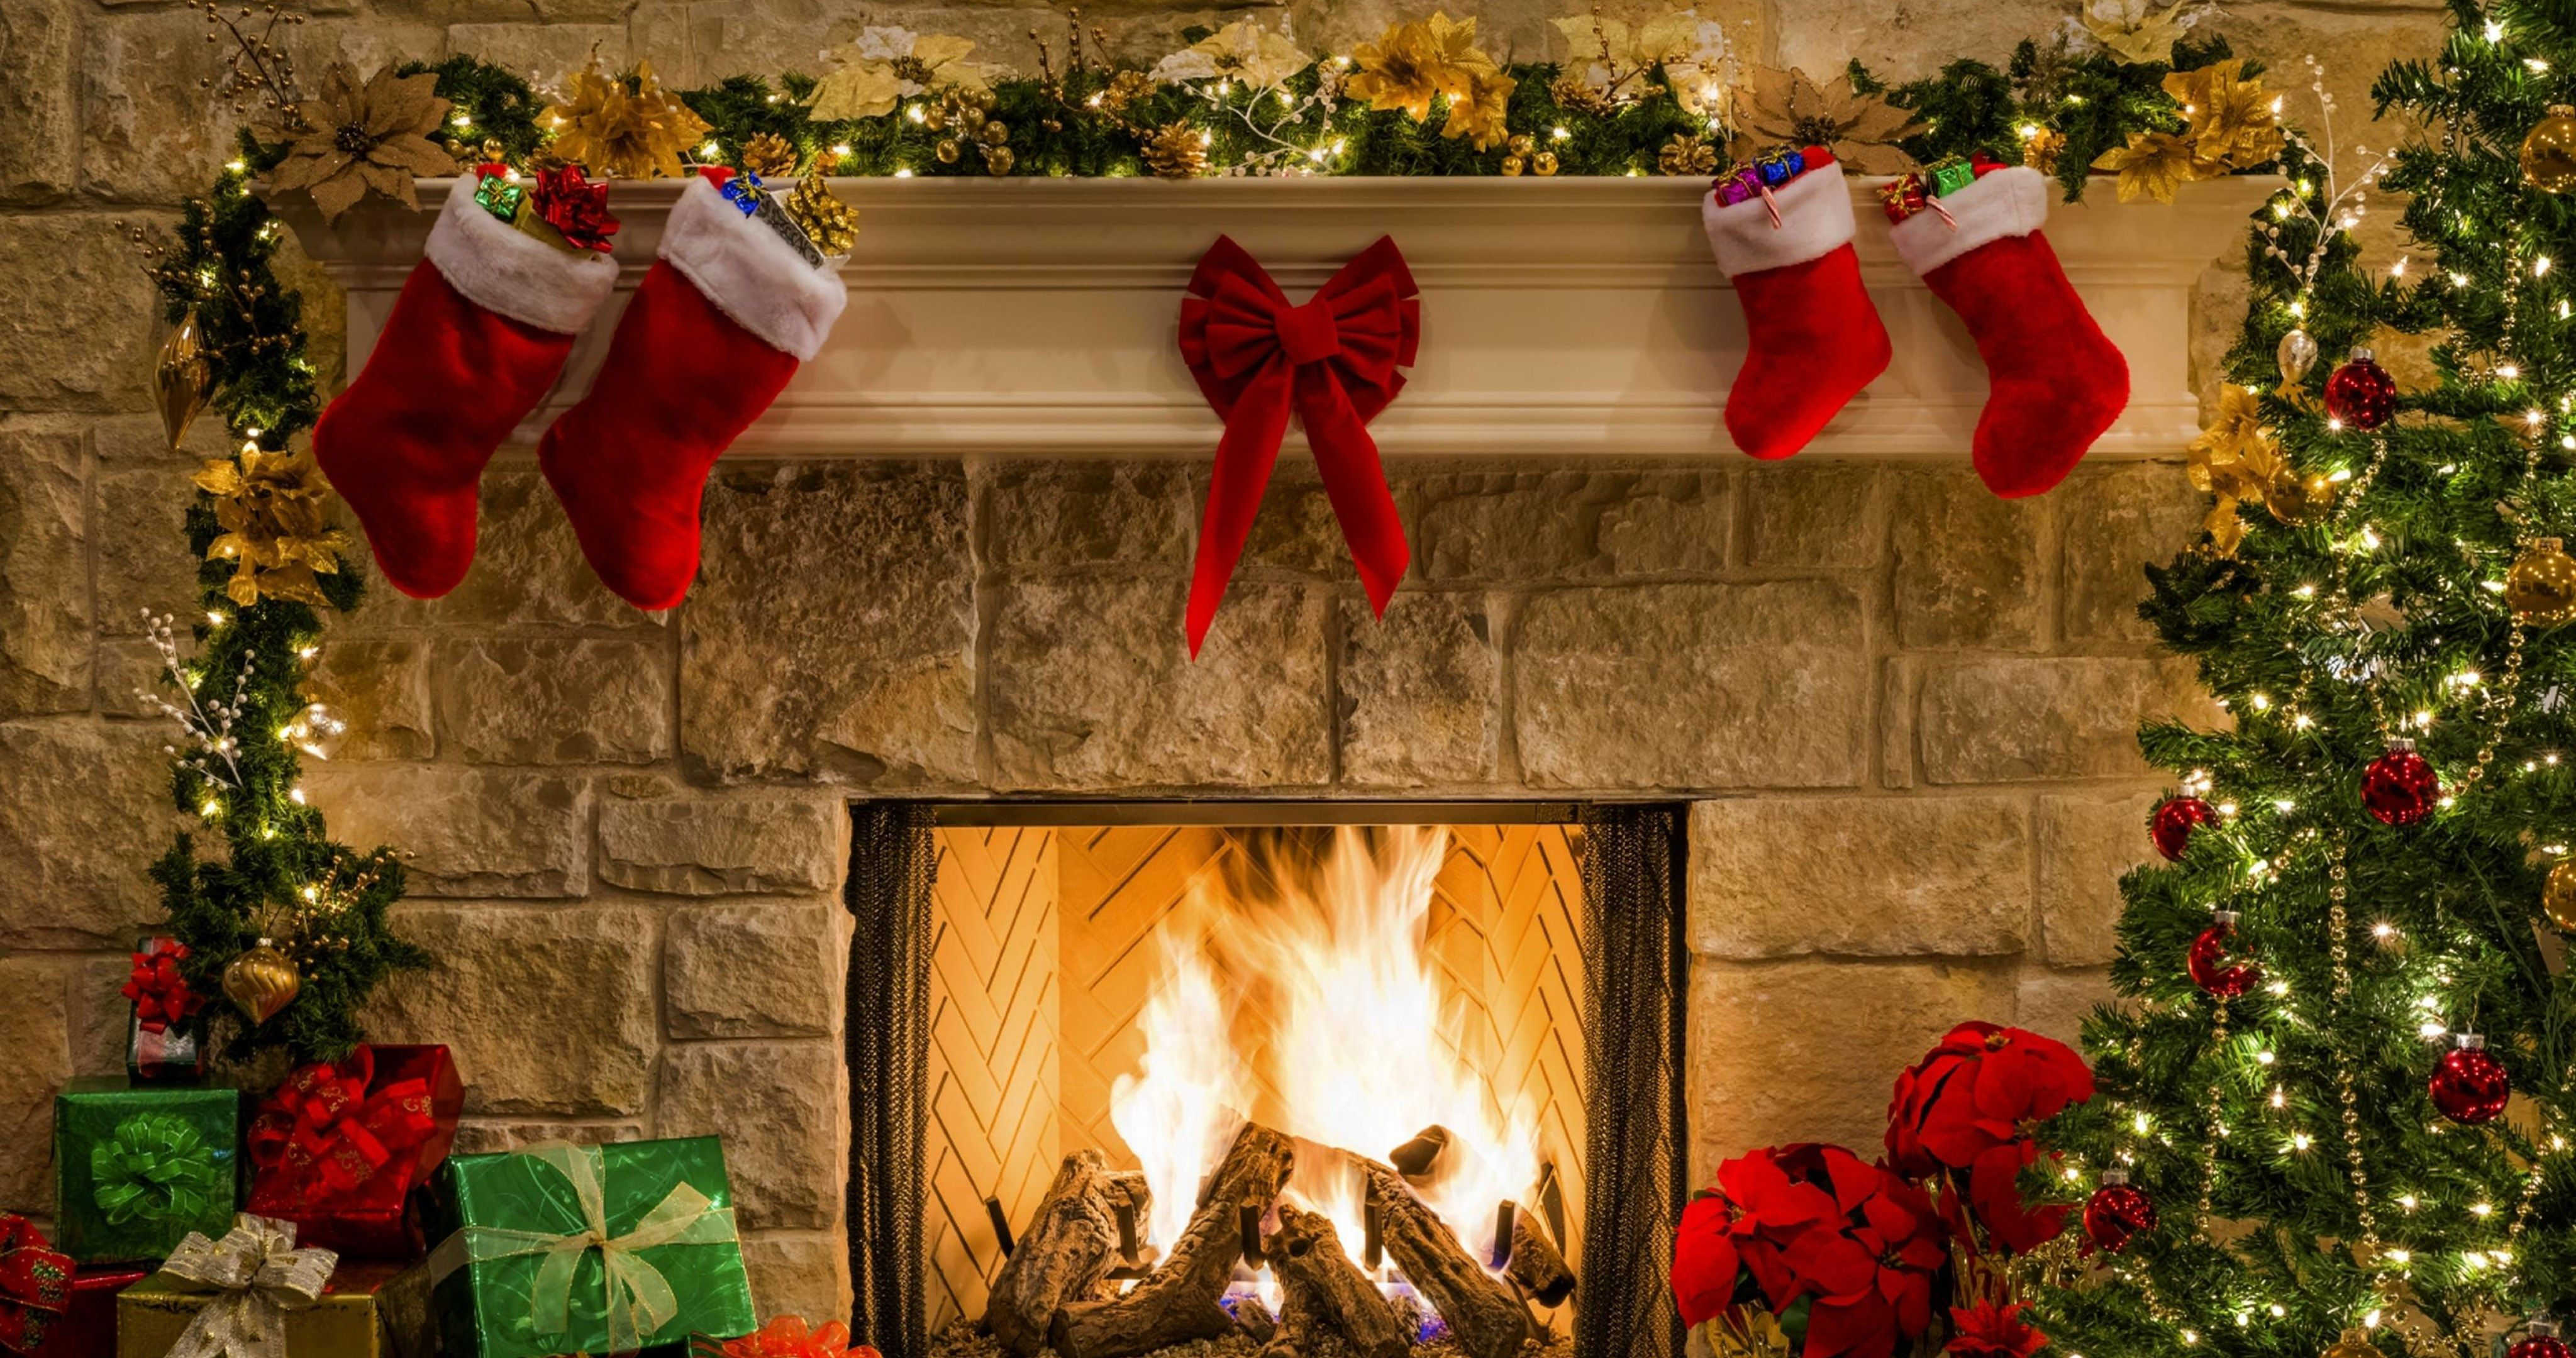 Christmas Fireplace Wallpapers   Top Christmas Fireplace 4096x2160